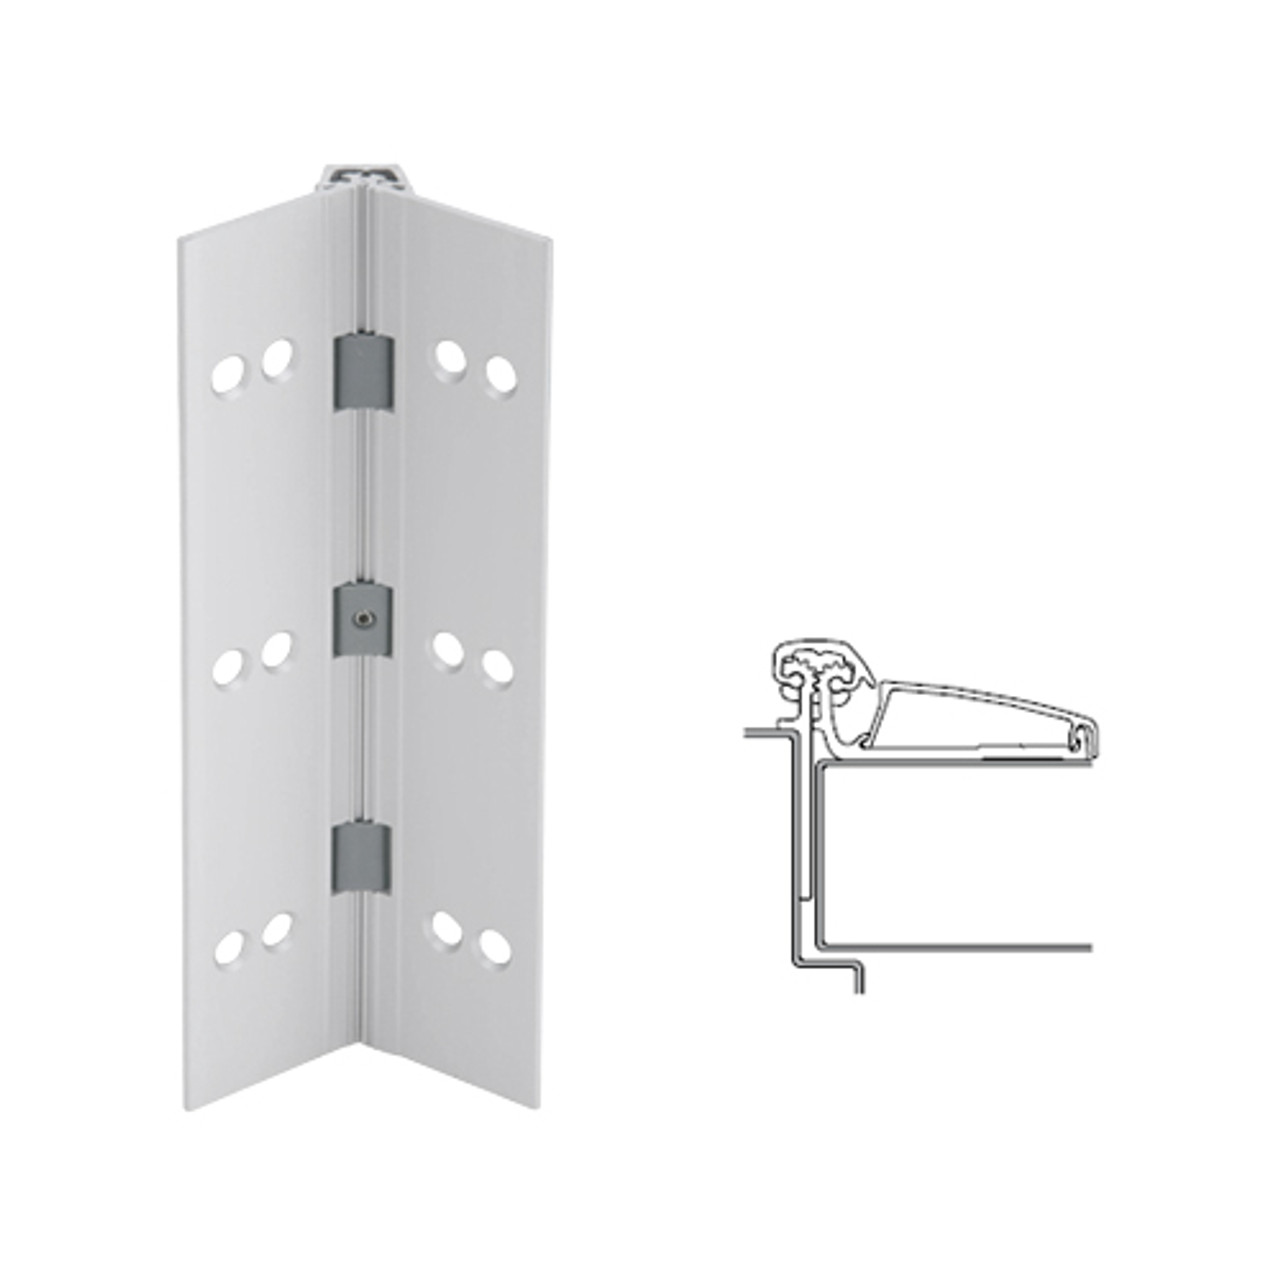 045XY-US28-95-WD IVES Adjustable Half Surface Continuous Geared Hinges with Wood Screws in Satin Aluminum